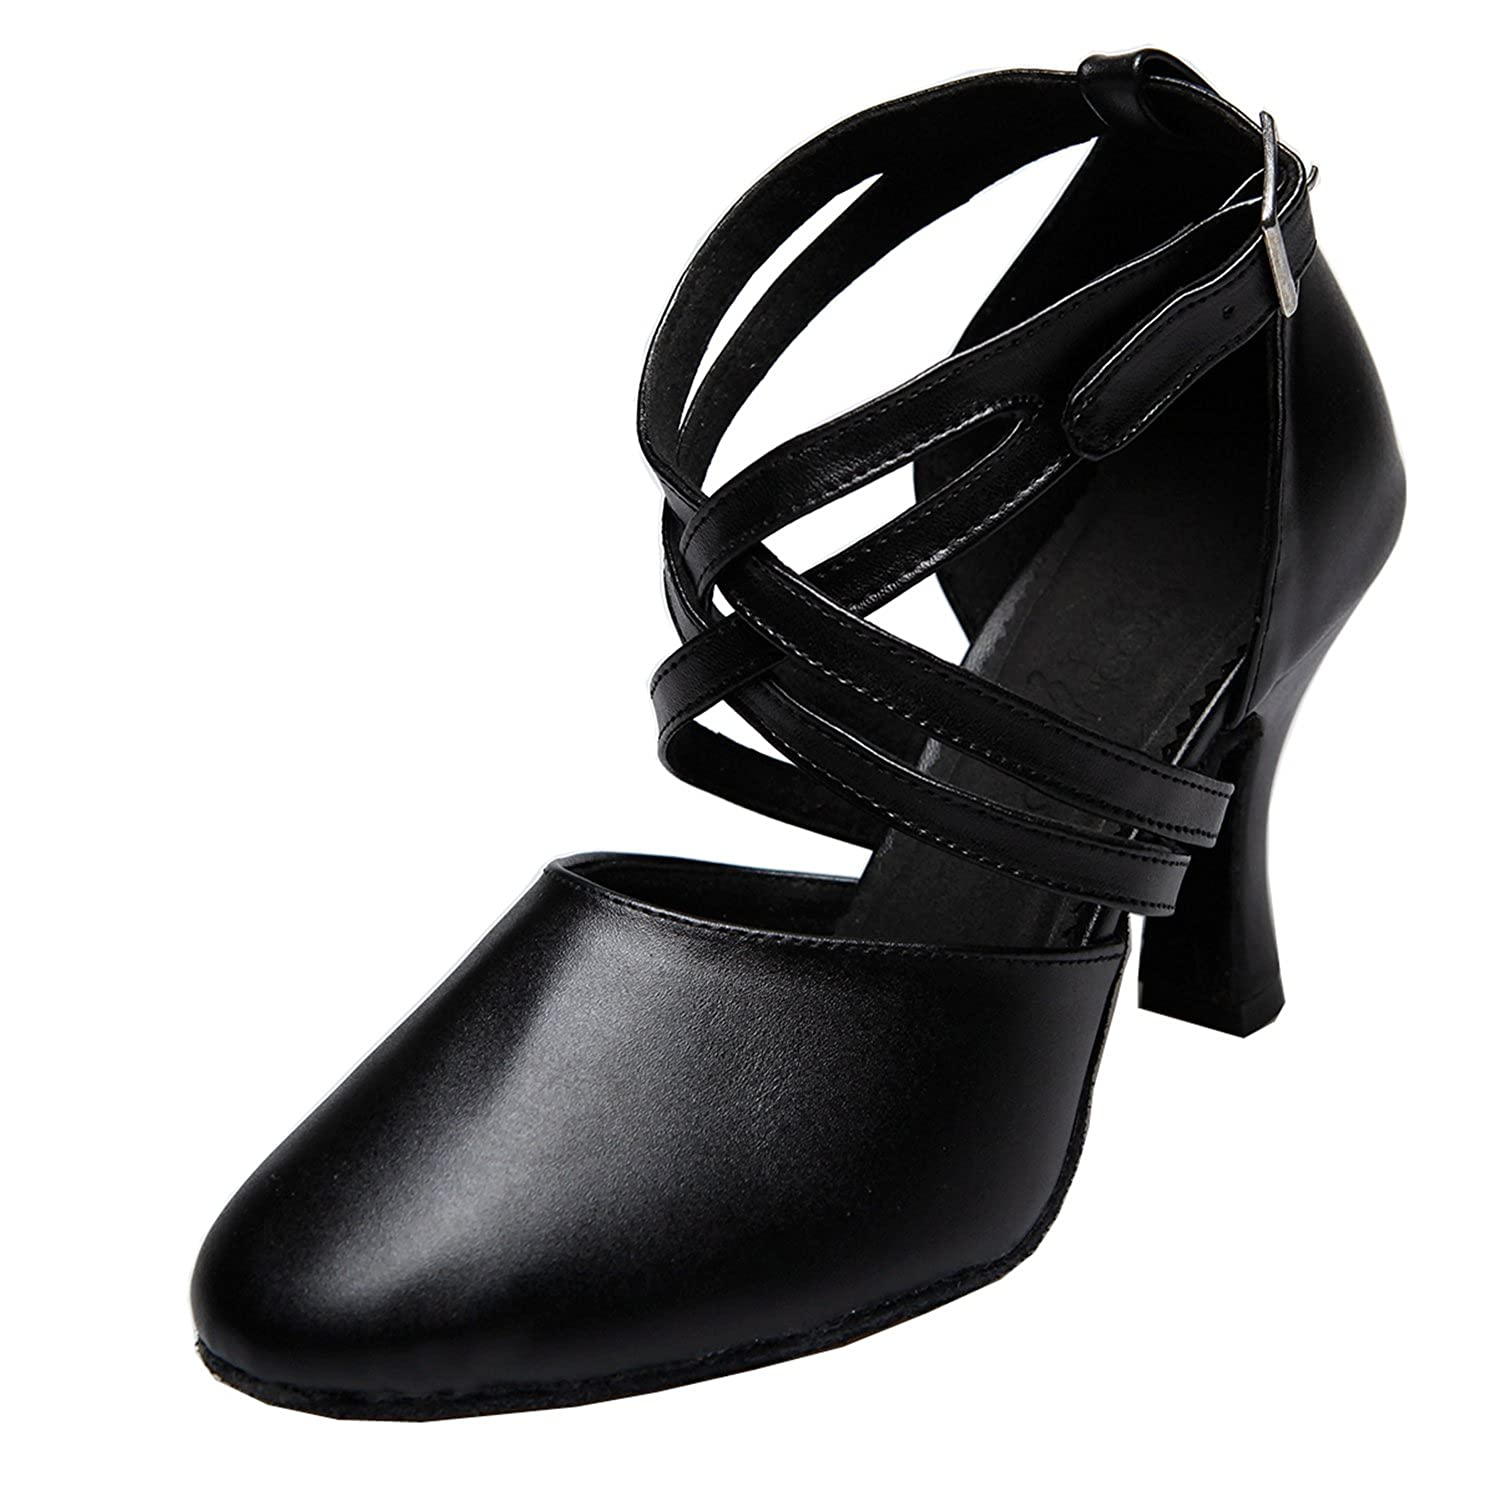 673a1517dcf081 MINITOO QJ807 Womens Ankle Strap Leather Salsa Tango Ballroom Latin Party Wedding  Dance Pumps  Amazon.co.uk  Shoes   Bags